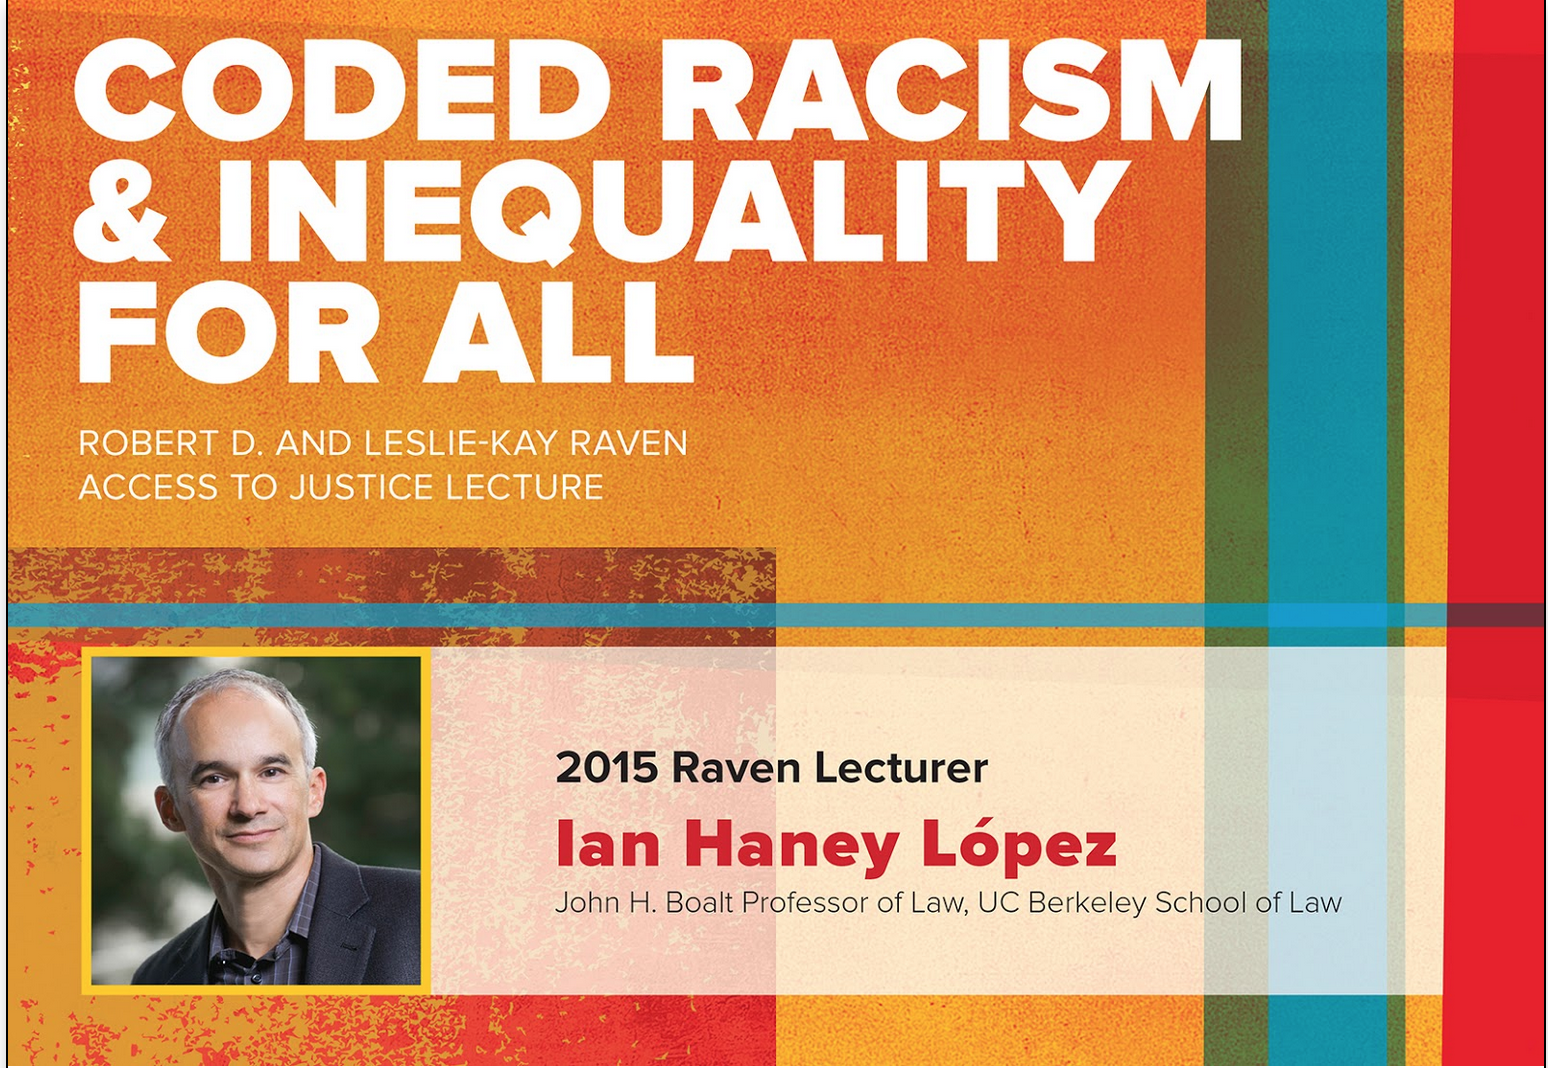 Coded Racism & Inequality for All